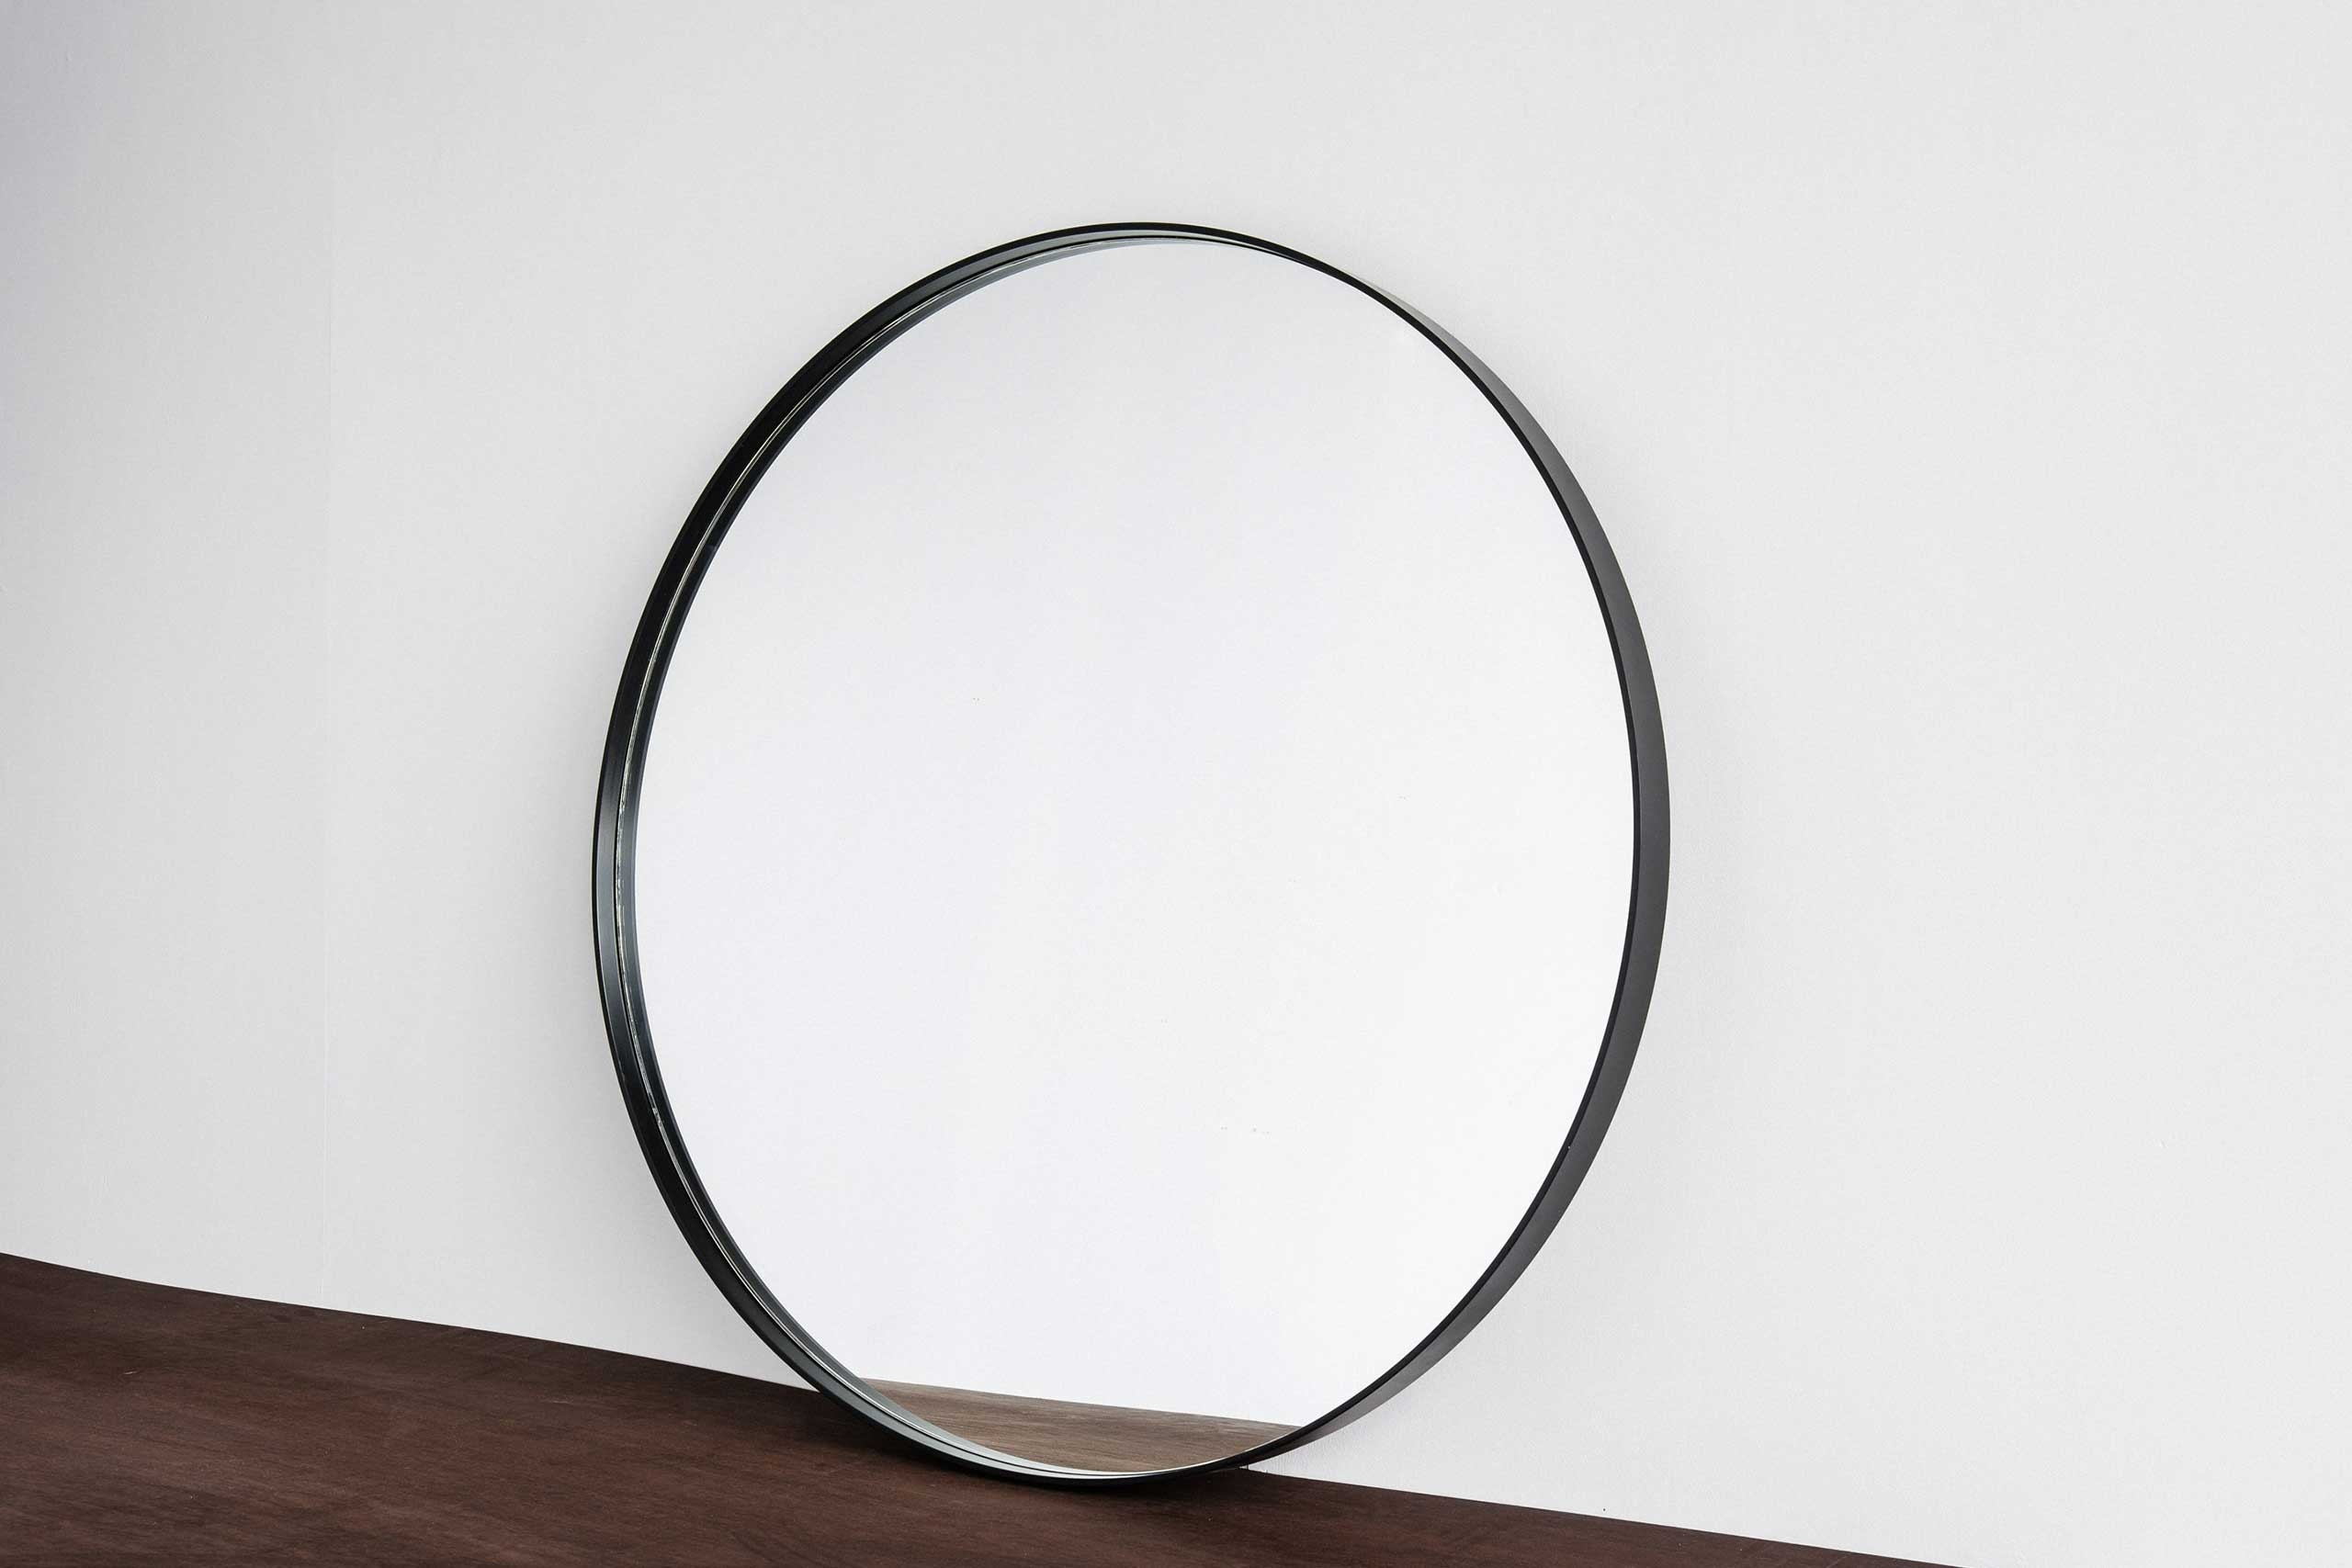 Home Industry Furniture Designed Handcrafted In New Zealand 2016 Pertaining To Large Round Mirrors (Image 9 of 15)